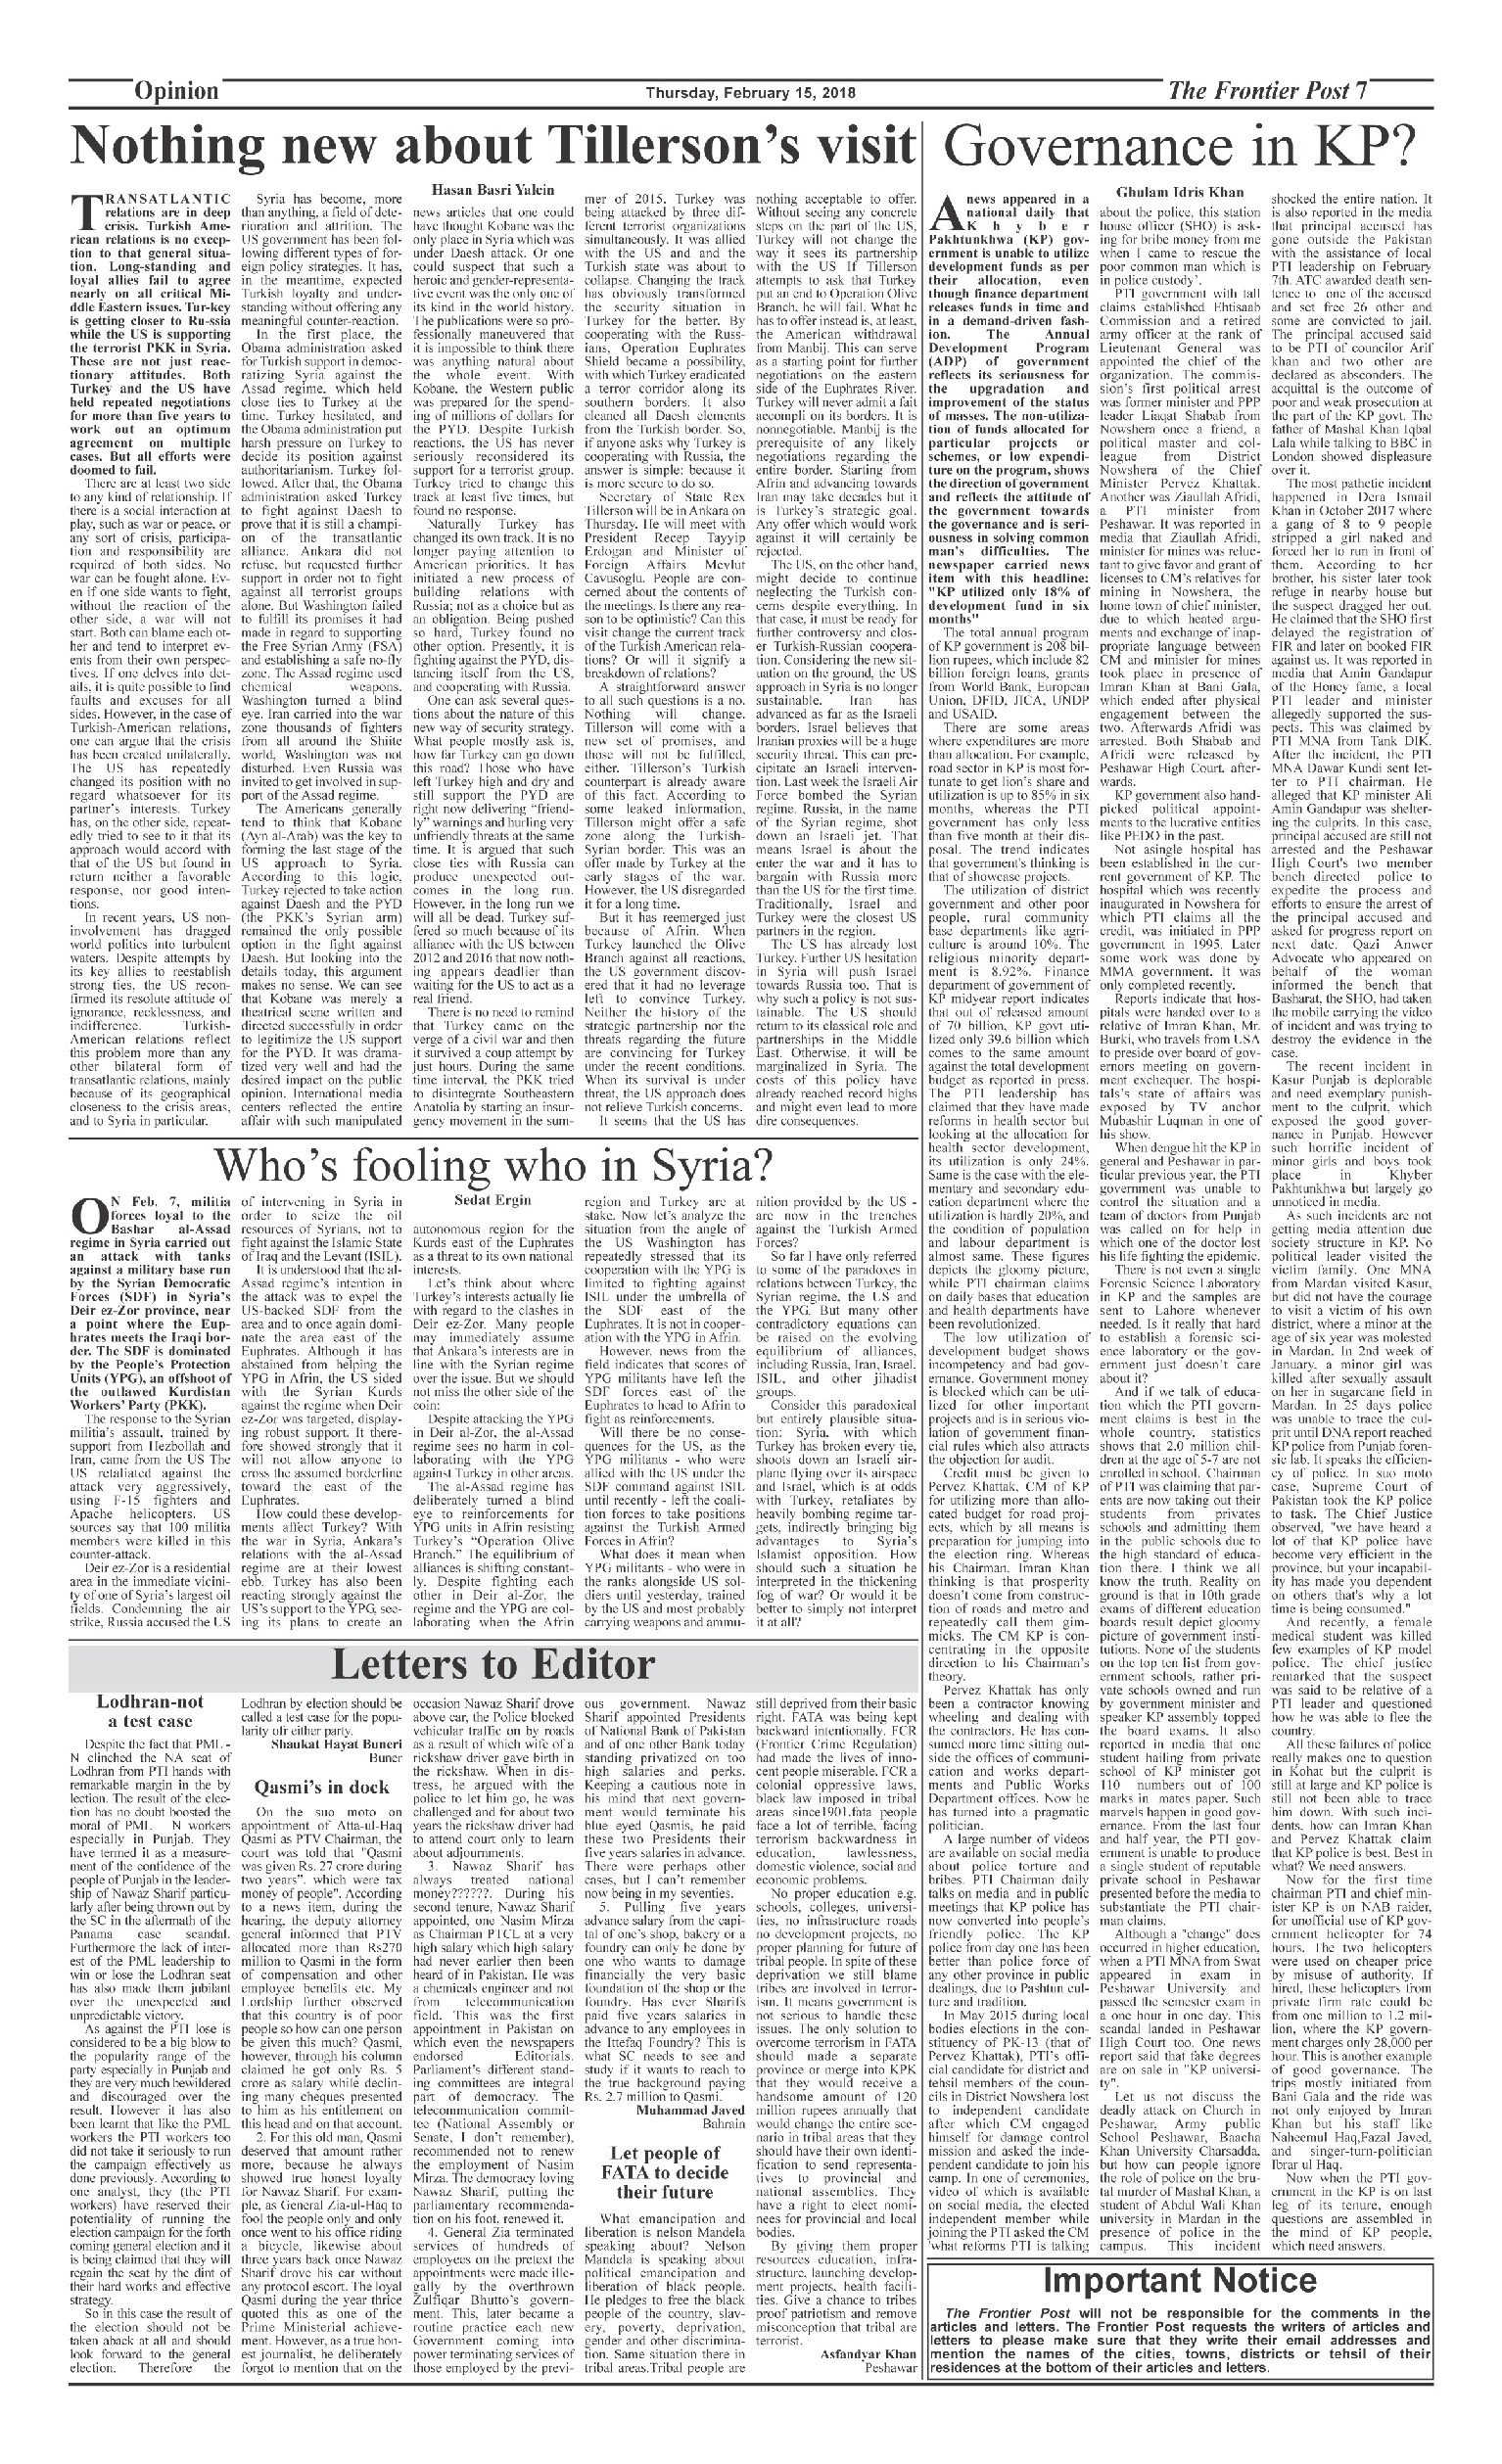 Opinion Page 15-02